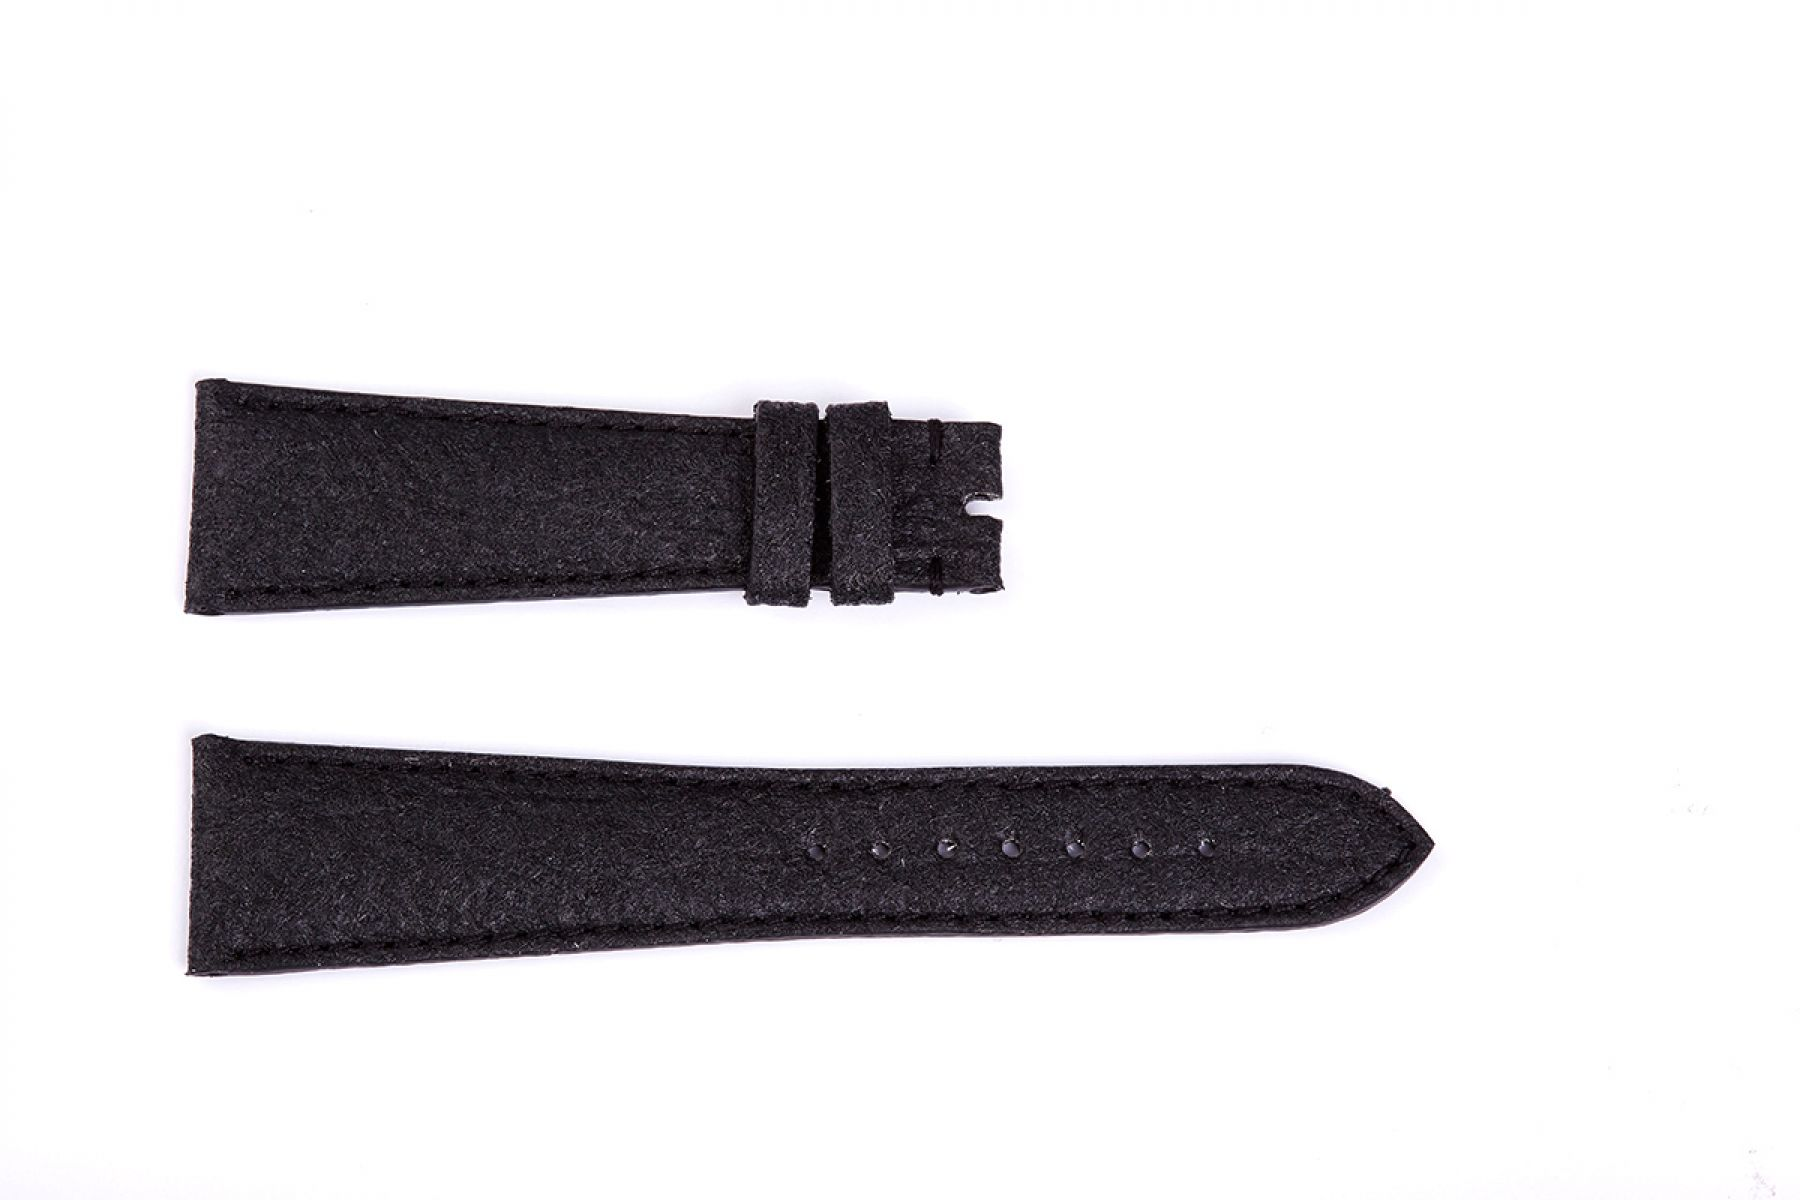 Charcoal Black Pinatex Strap 16mm, 18mm, 19mm, 20mm, 21mm, 22mm General style